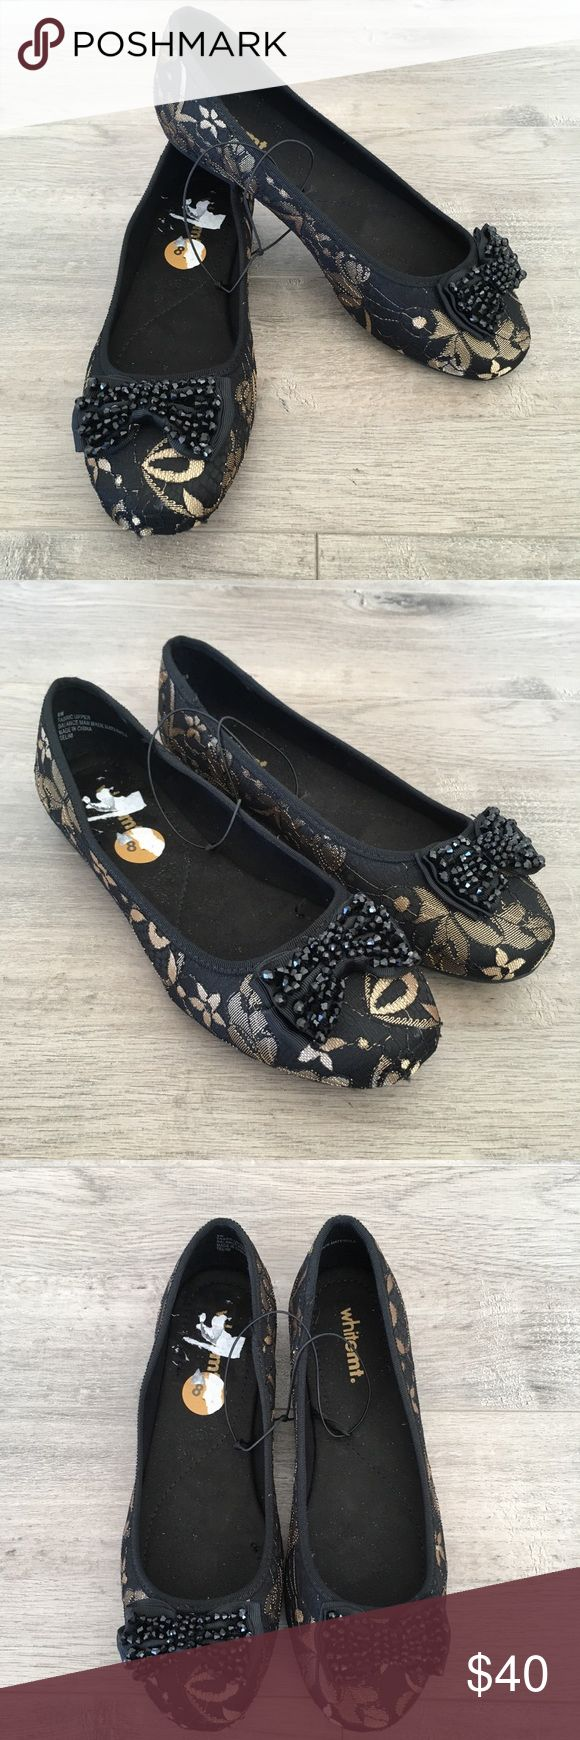 WHITE MT. ~ black & gold floral lace ballet flat WHITE MOUNTAIN ~   White mountain brand  Black & gold ballet flat  Black & gold lace flats  Front toe bow  Embellished bow Size 8 w Made in China  No box  New with tags white mt Shoes Flats & Loafers